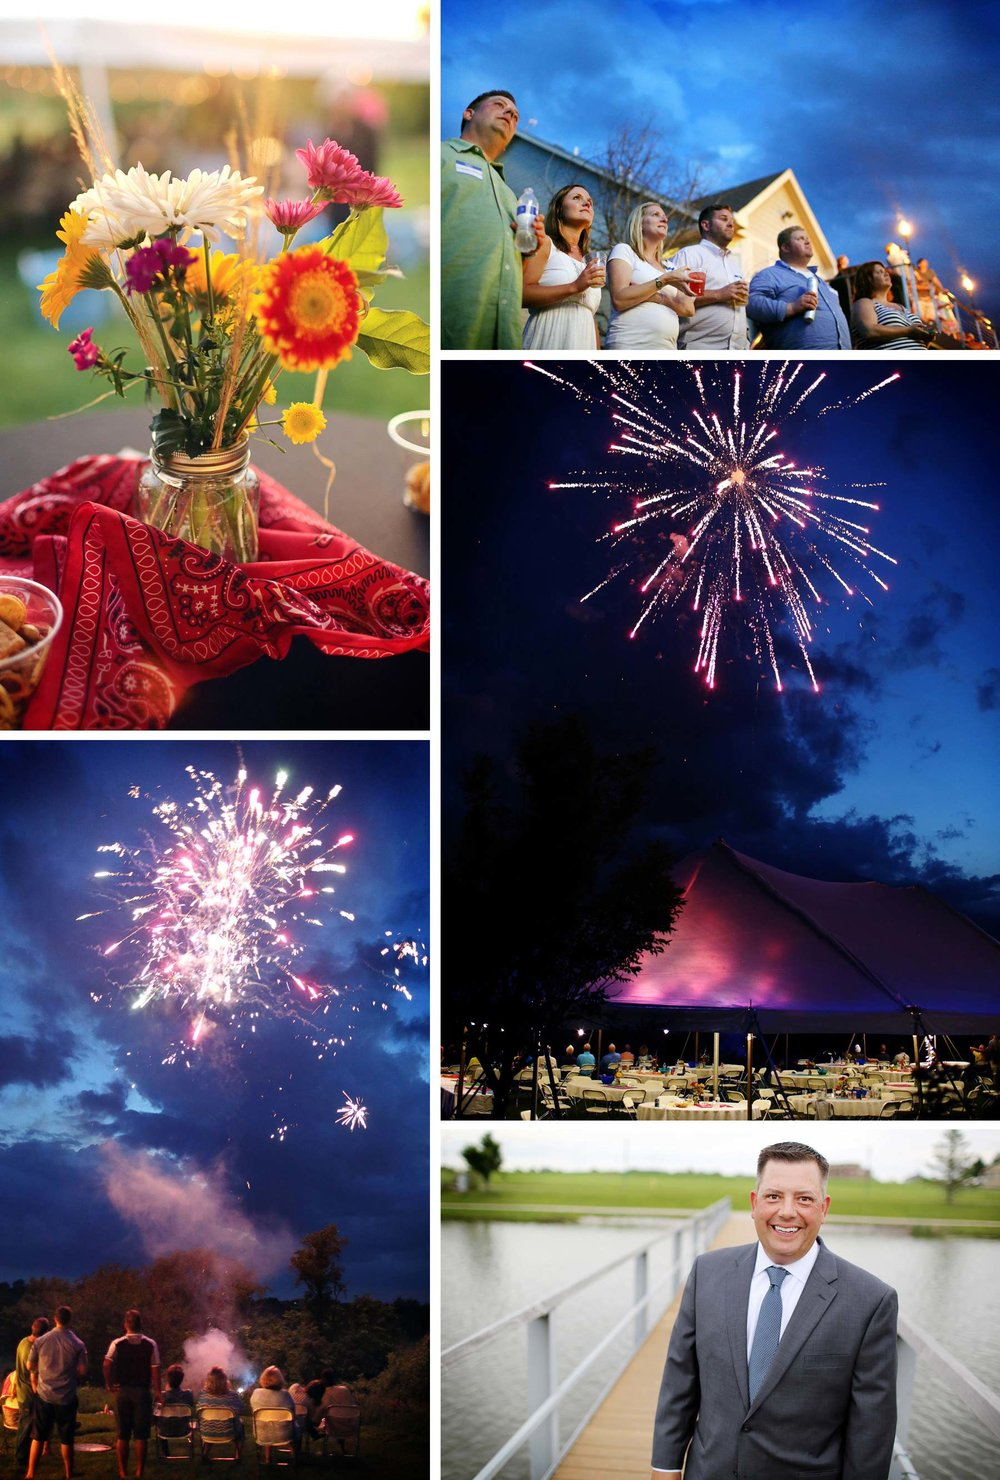 03-Des-Moines-Iowa-Wedding-Photography-by-Vick-Photography-Farm-Wedding-Rehearsal-Dinner-Fireworks-Lindsay-&-Chad.jpg